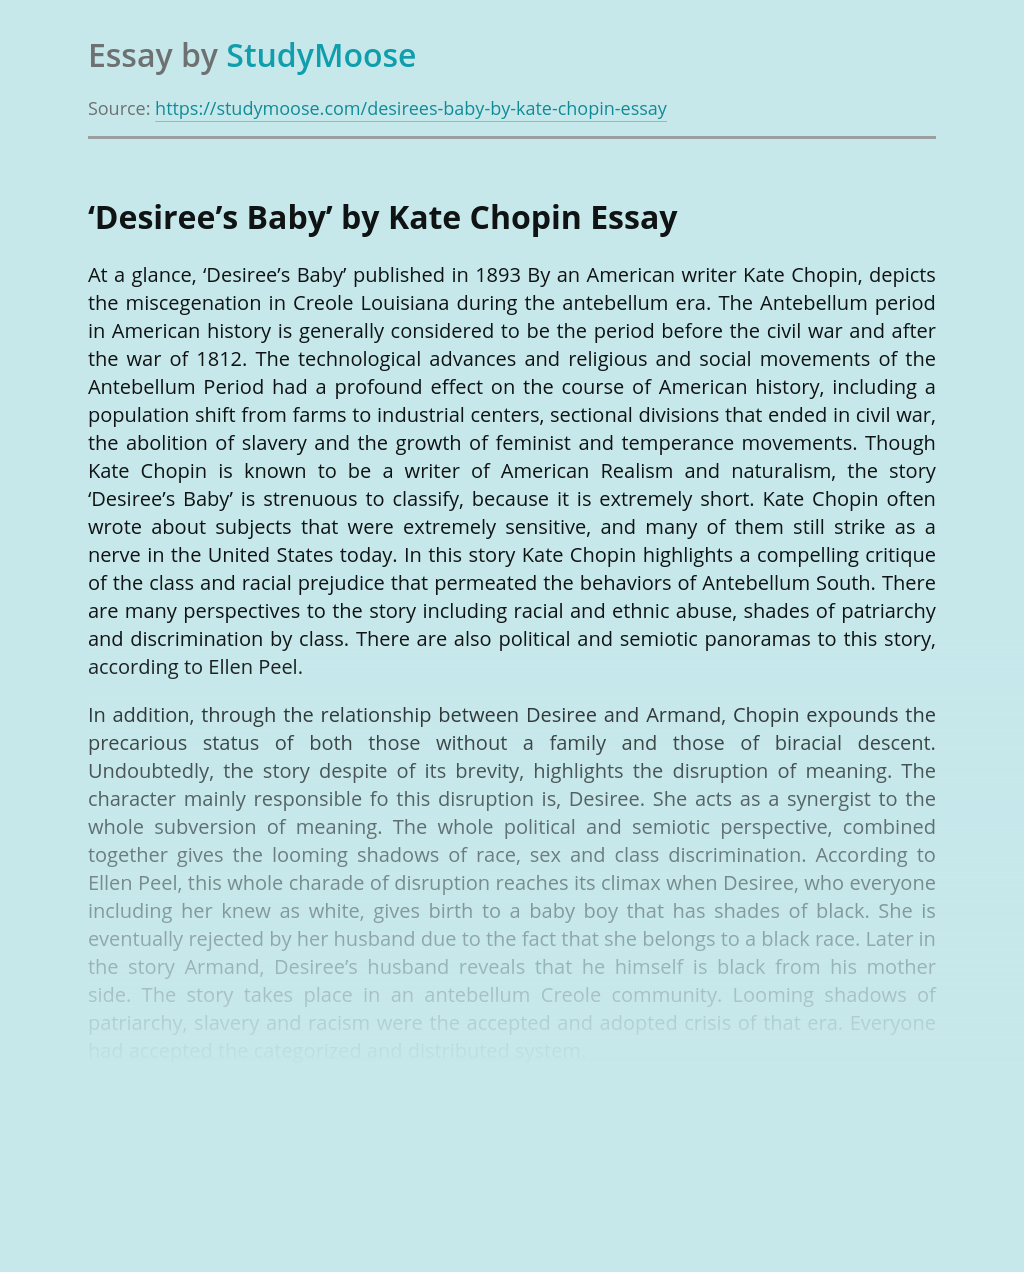 'Desiree's Baby' by Kate Chopin